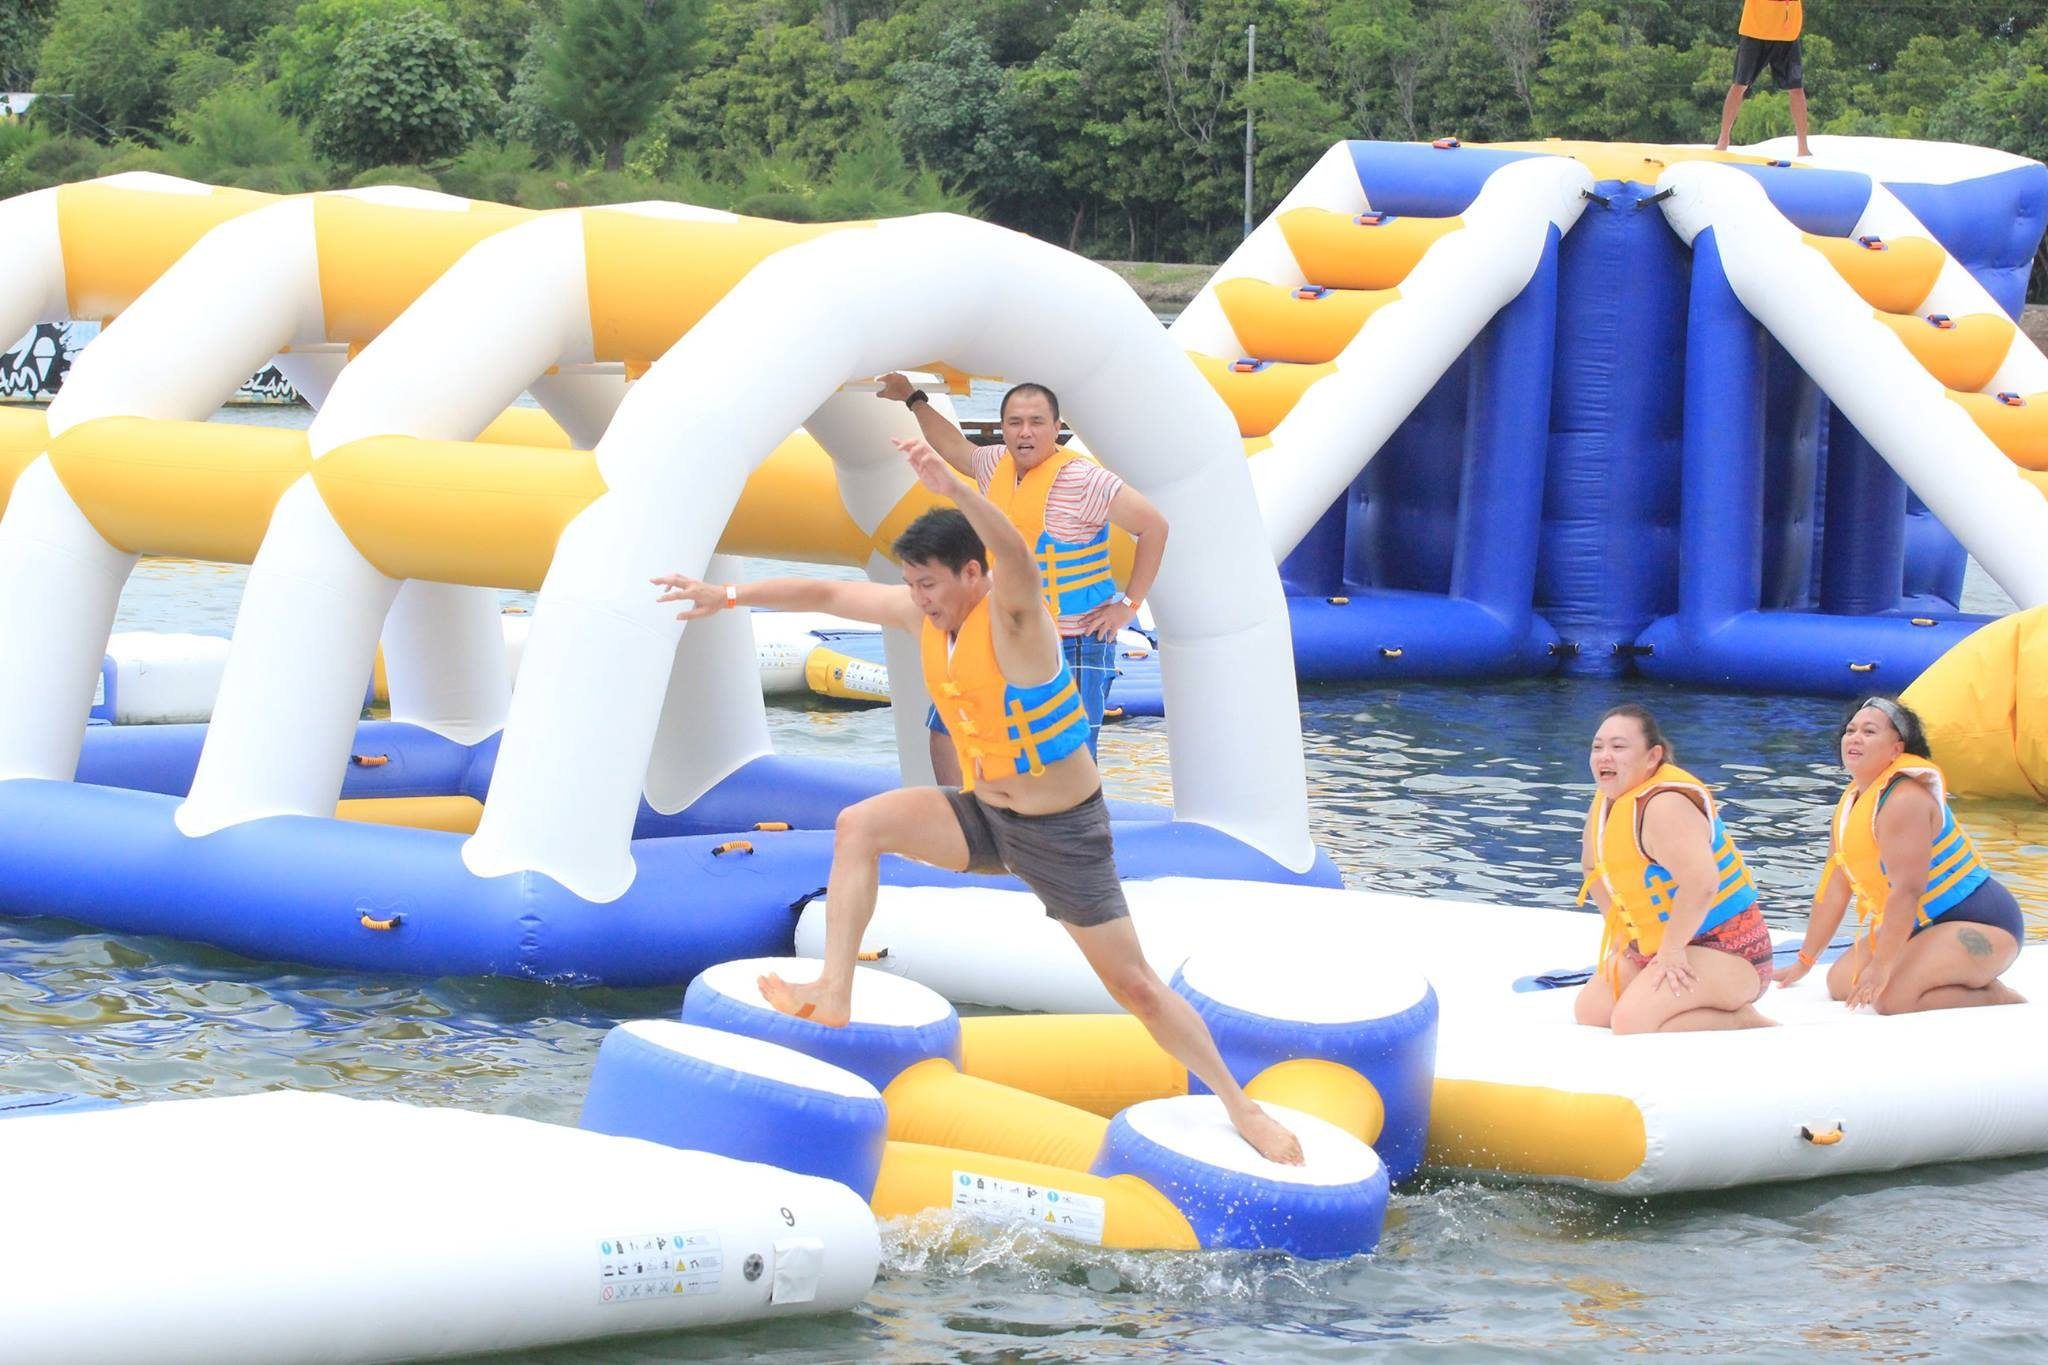 Custom floating water inflatables harrison company for adults-32